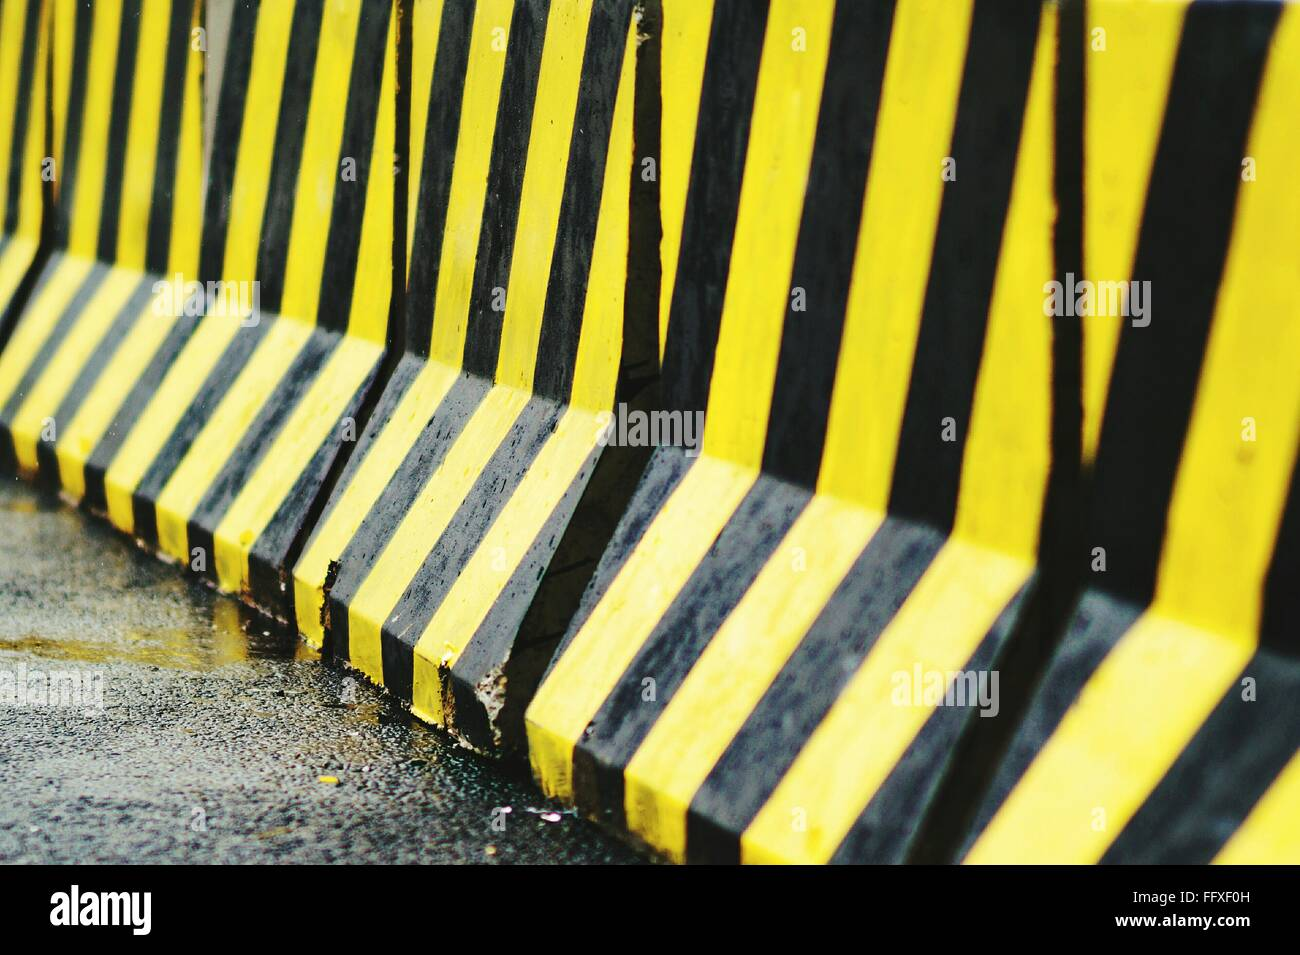 Close-Up Of Barricade On Road - Stock Image